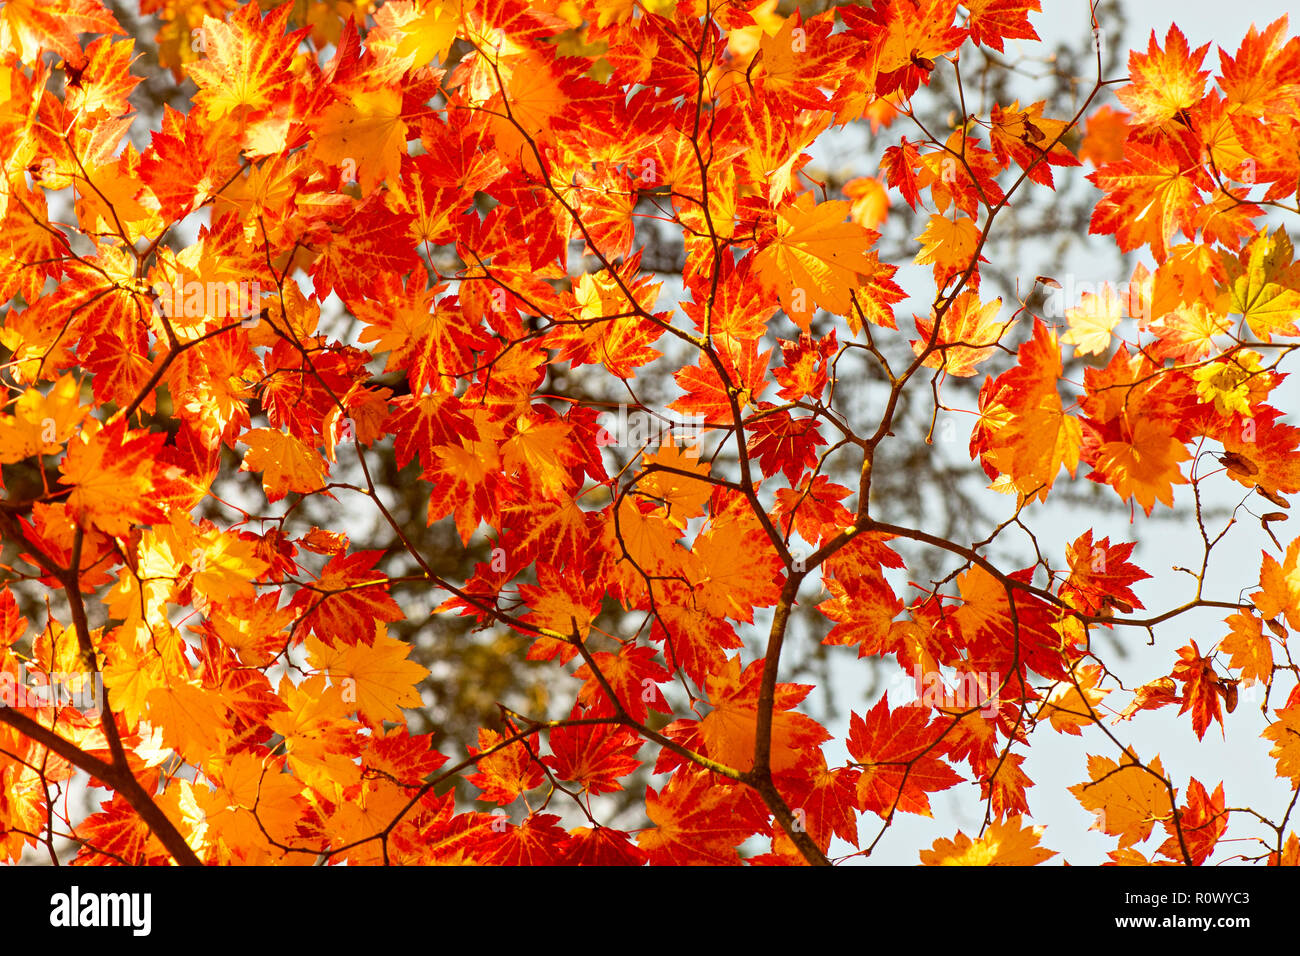 Backgrounds Patterns Acer Stock Photos Backgrounds Patterns Acer